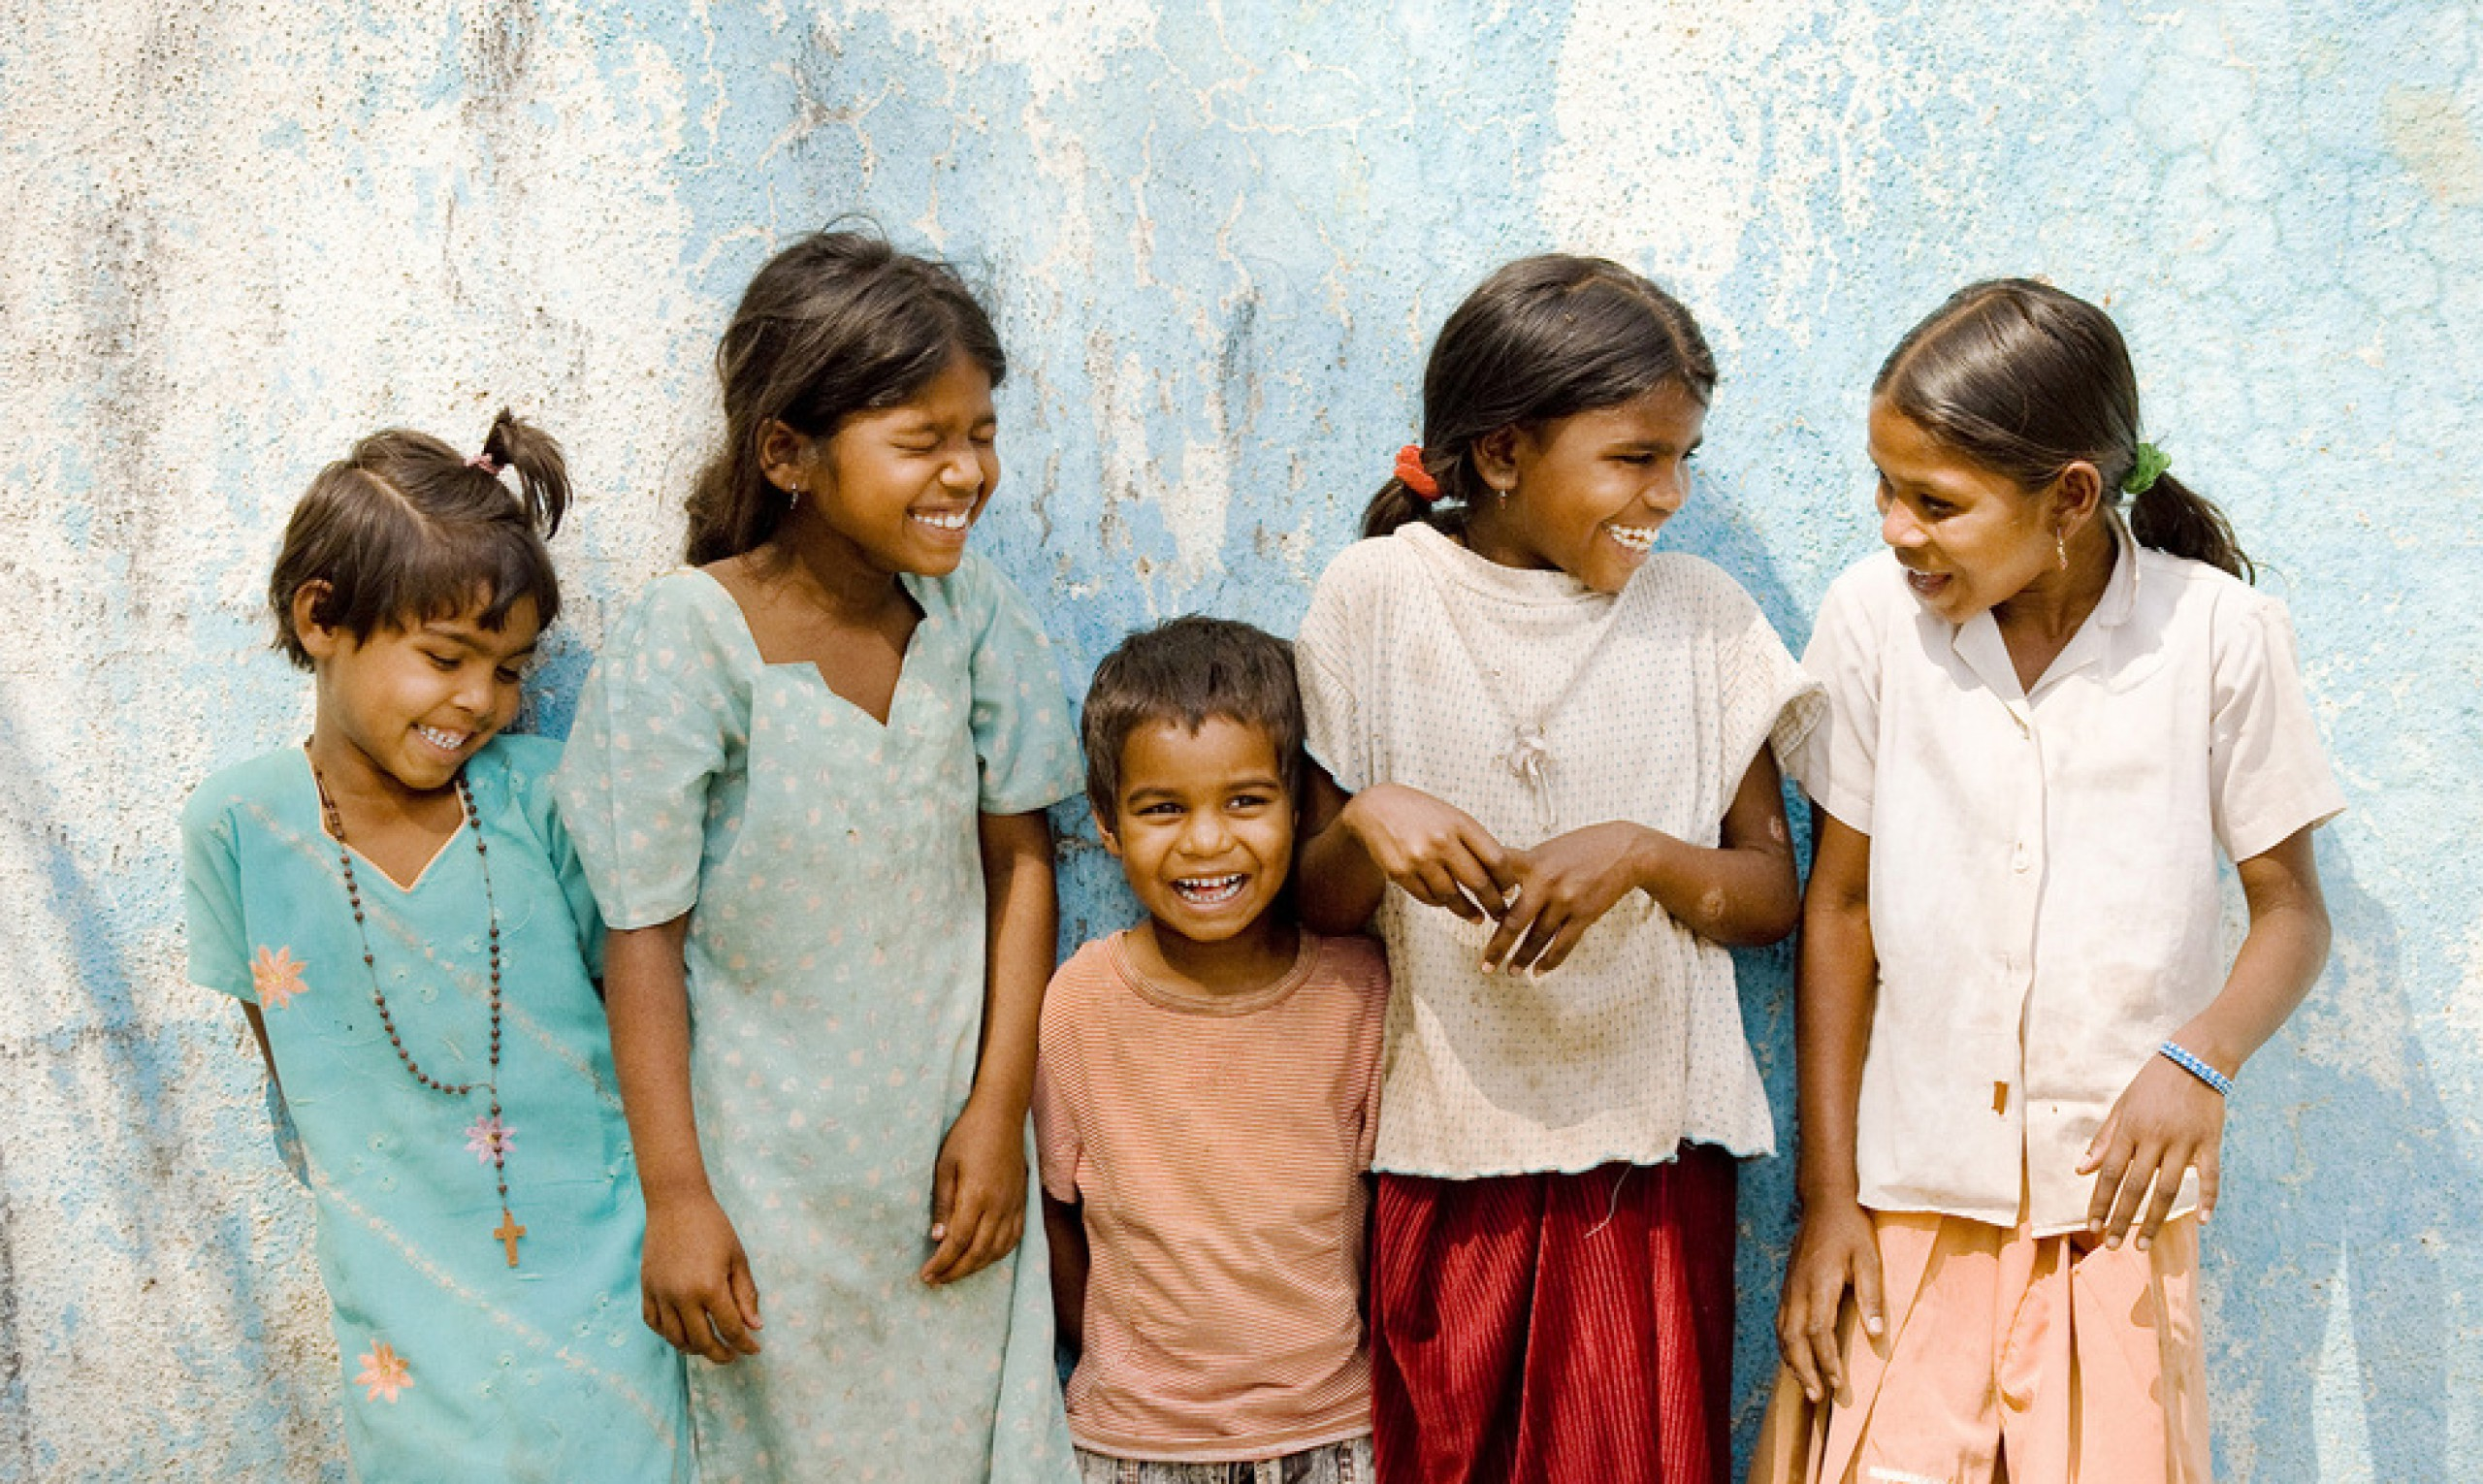 Educo is a charity founded in Ireland in 2006 with the aim of educating children in India out of poverty.